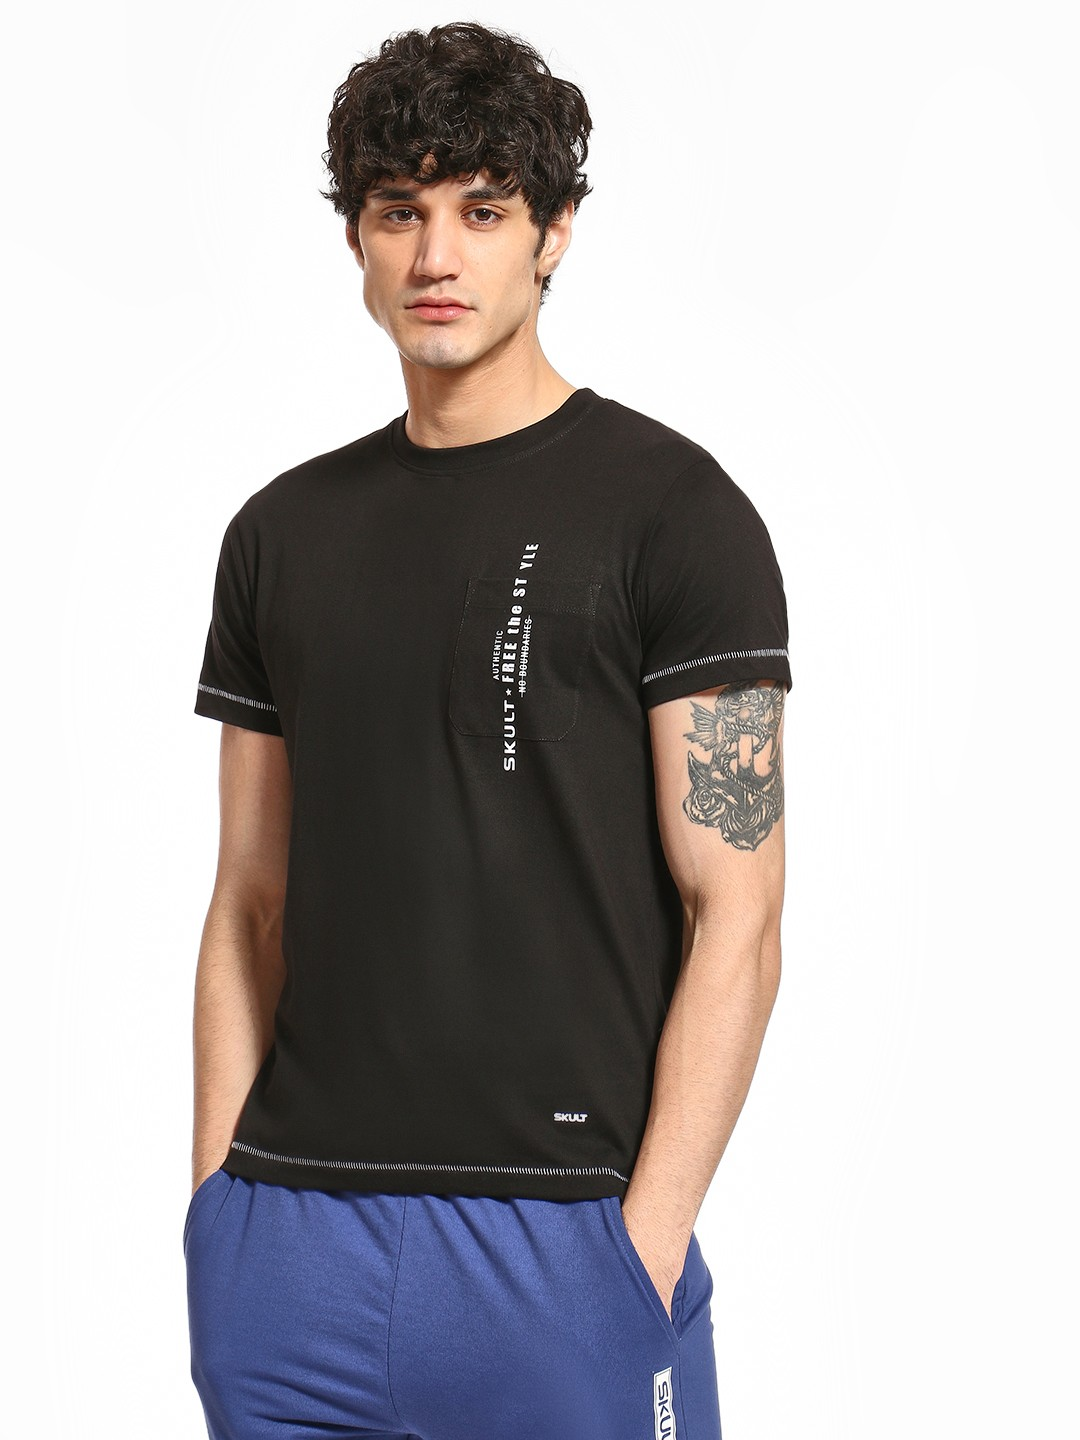 SKULT By Shahid Kapoor Black Pocket Slogan Print T-Shirt 1